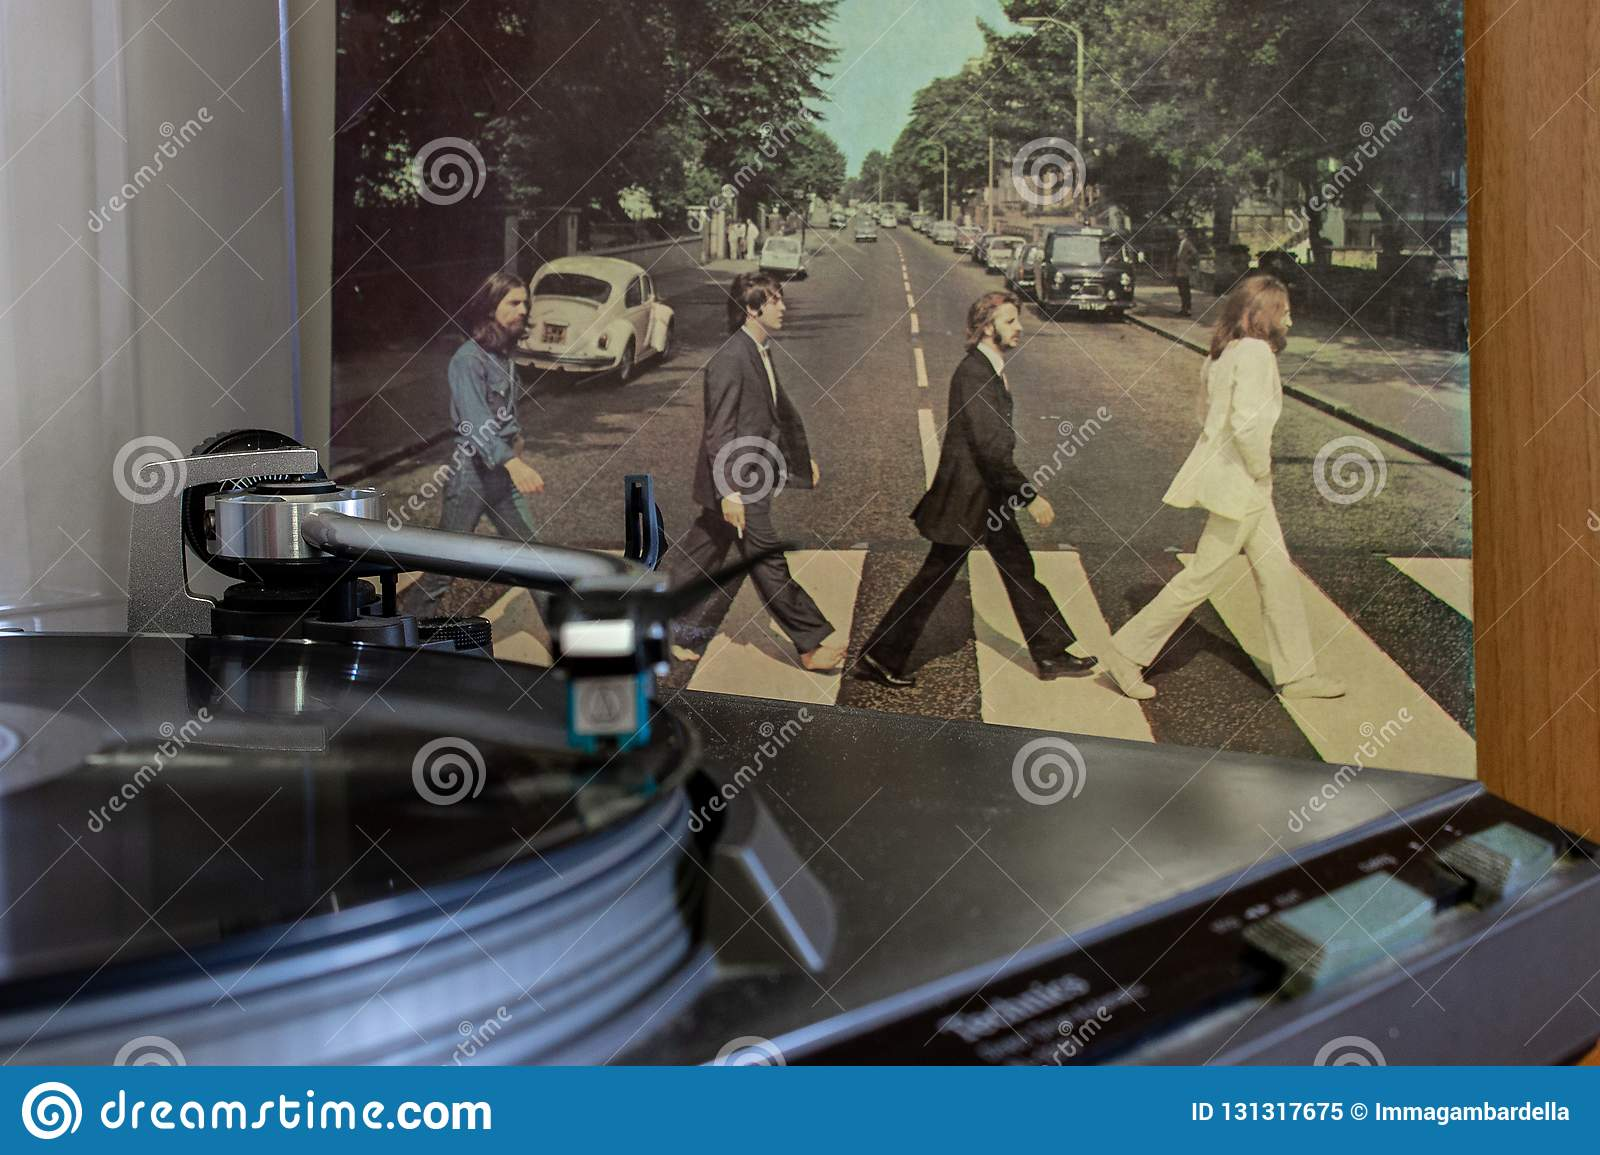 Naples, record player with the Beatles vinyls Abby Road on background.